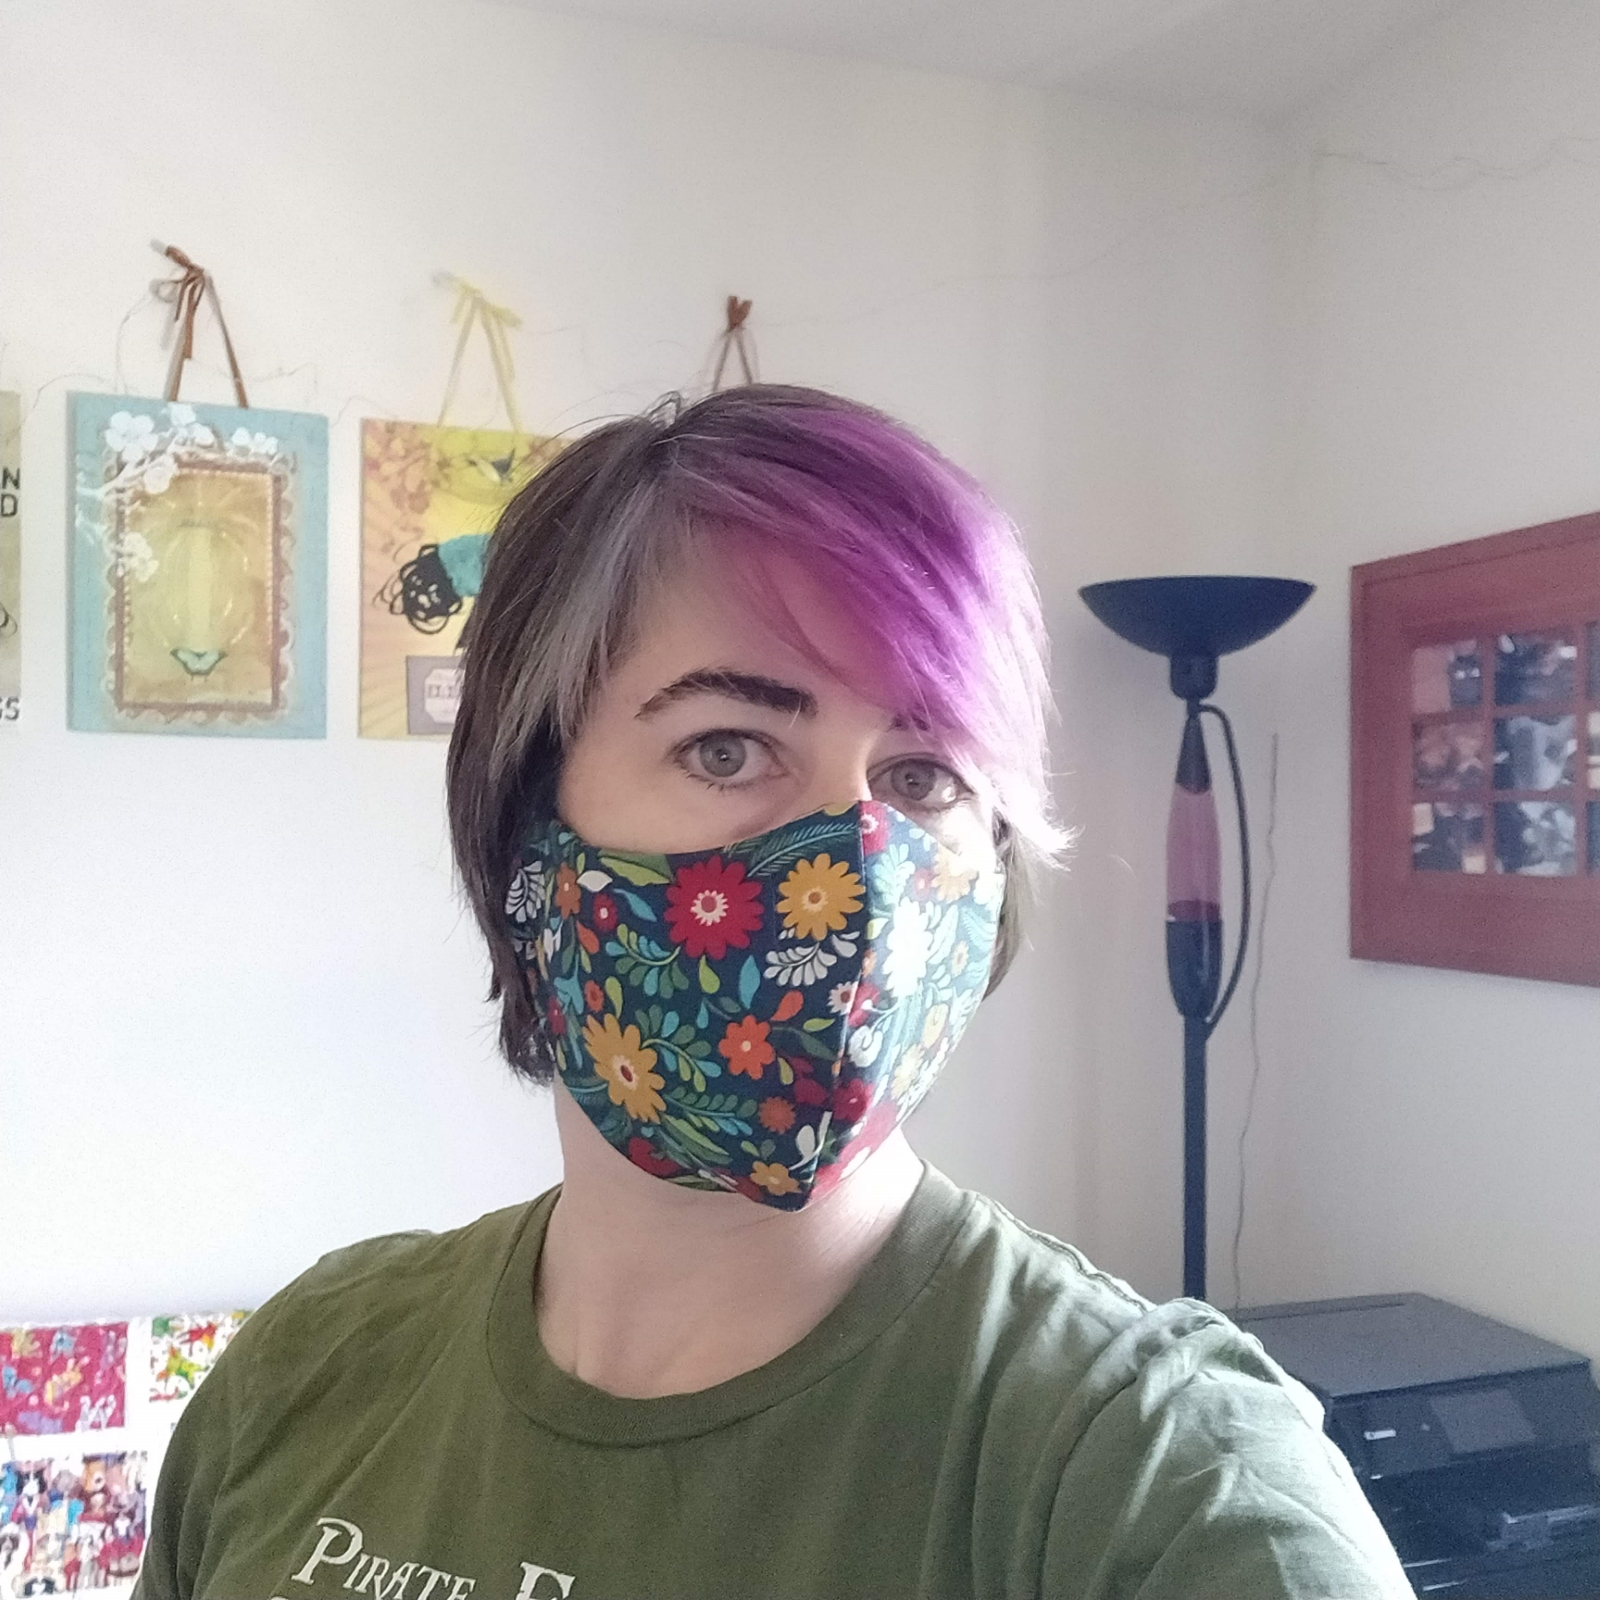 Pirate models a mask sewn from a cute flowery fabric.